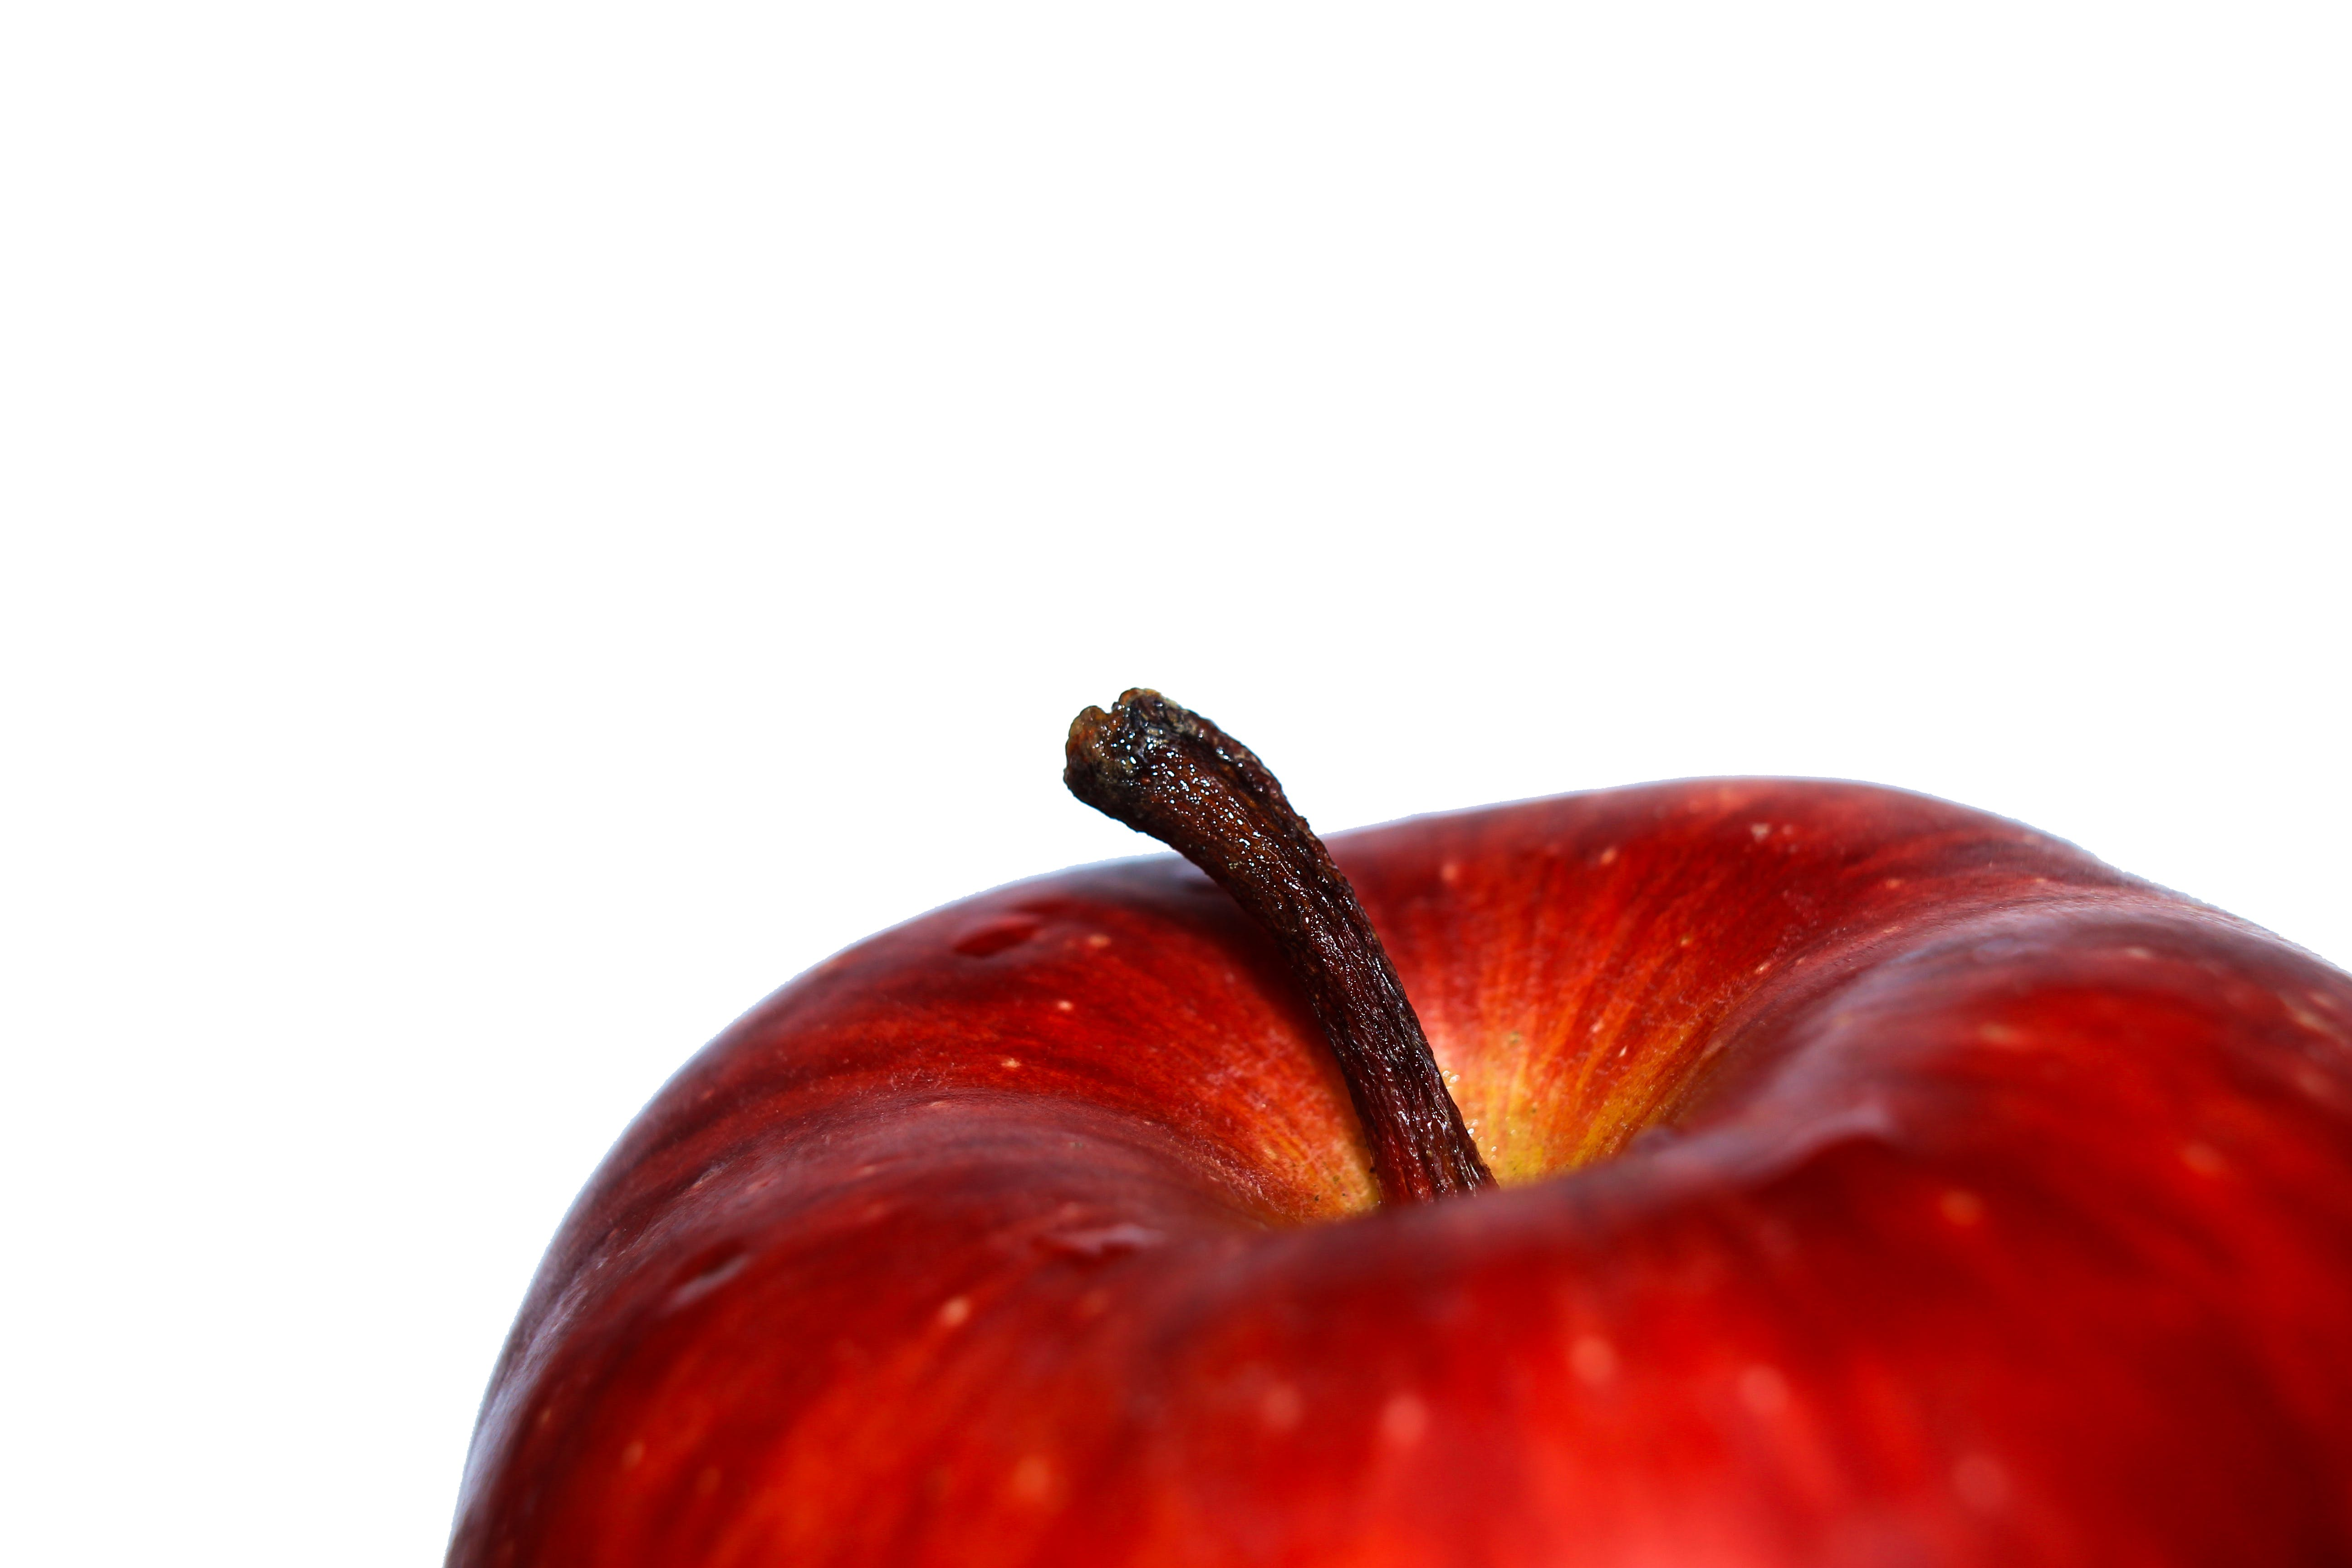 Red Apple Fruit Photography